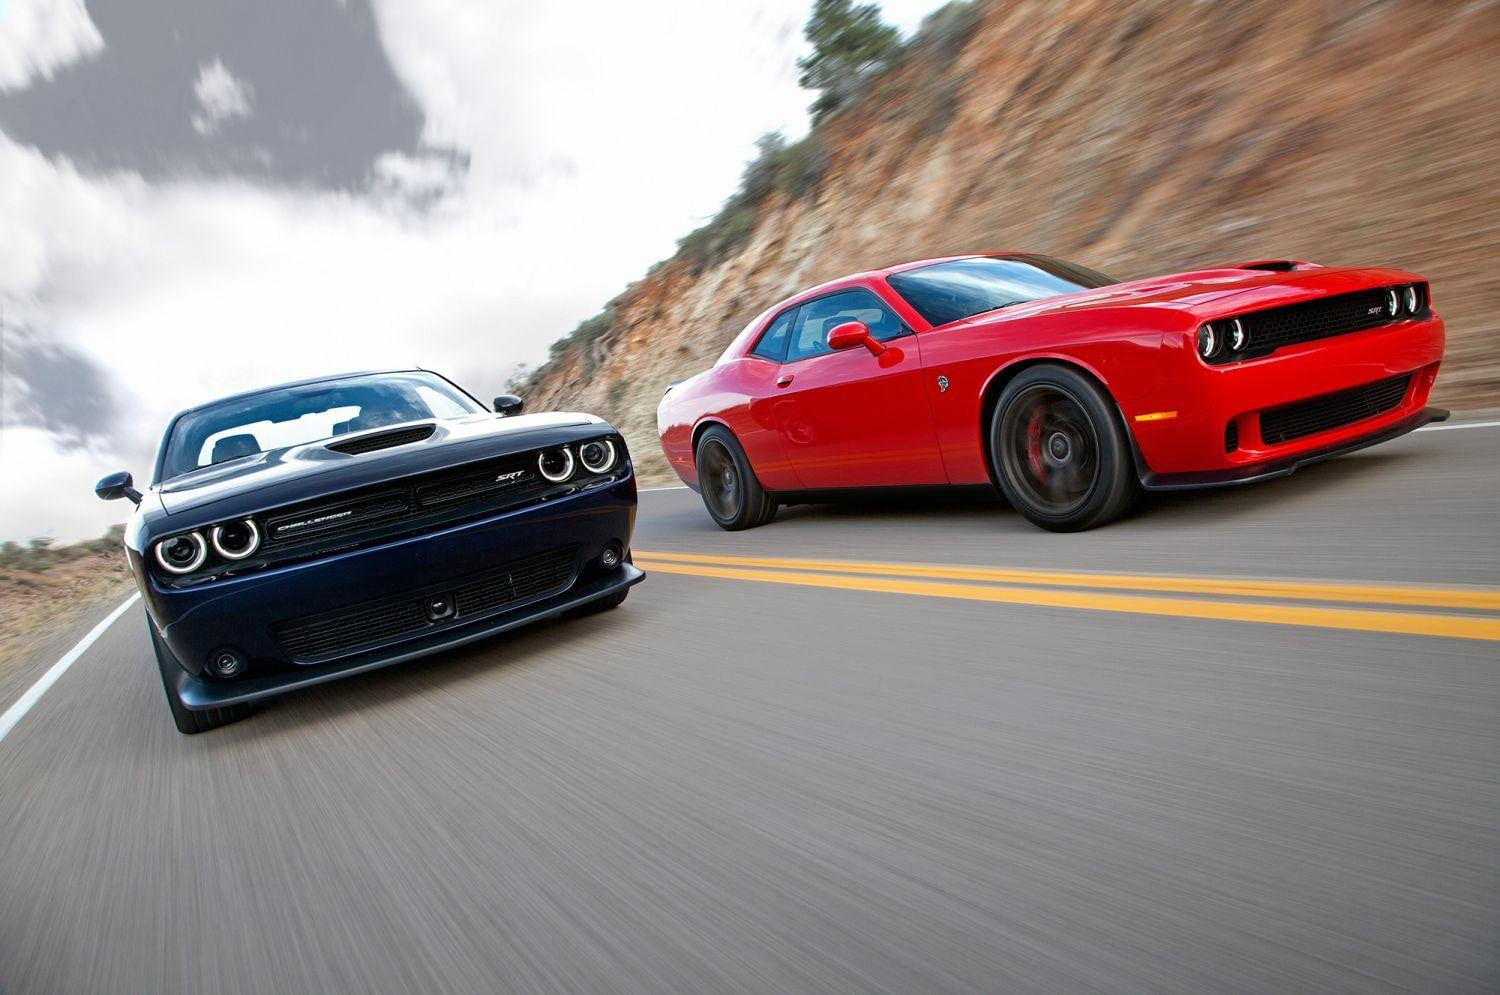 2016 Dodge SRT Hellcat | Price, Pictures, Specs, News | Digital Trends